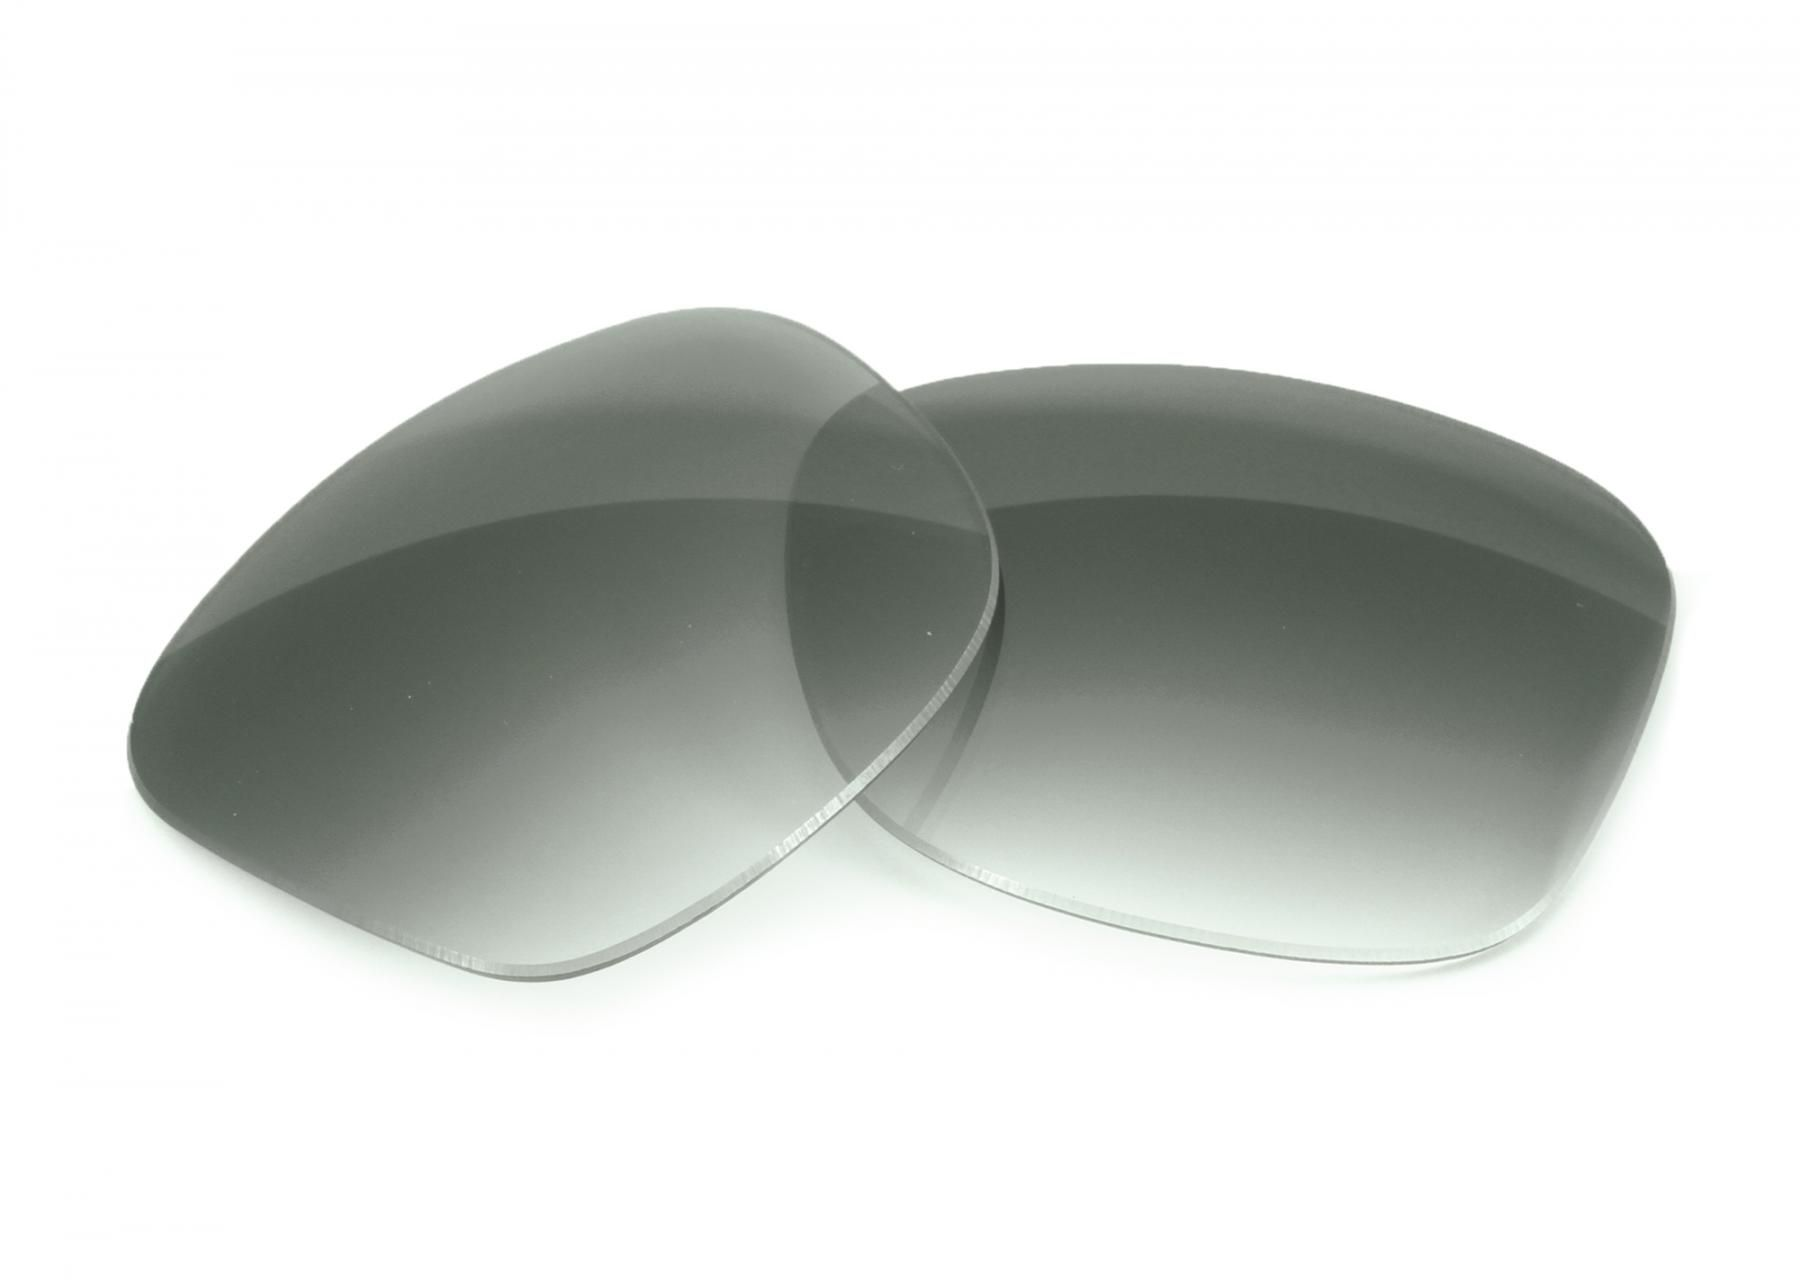 3e1351ba51d Dolce and Gabbana DG 6086 G15 Gradient Grey Green to Clear Replacement  Lenses